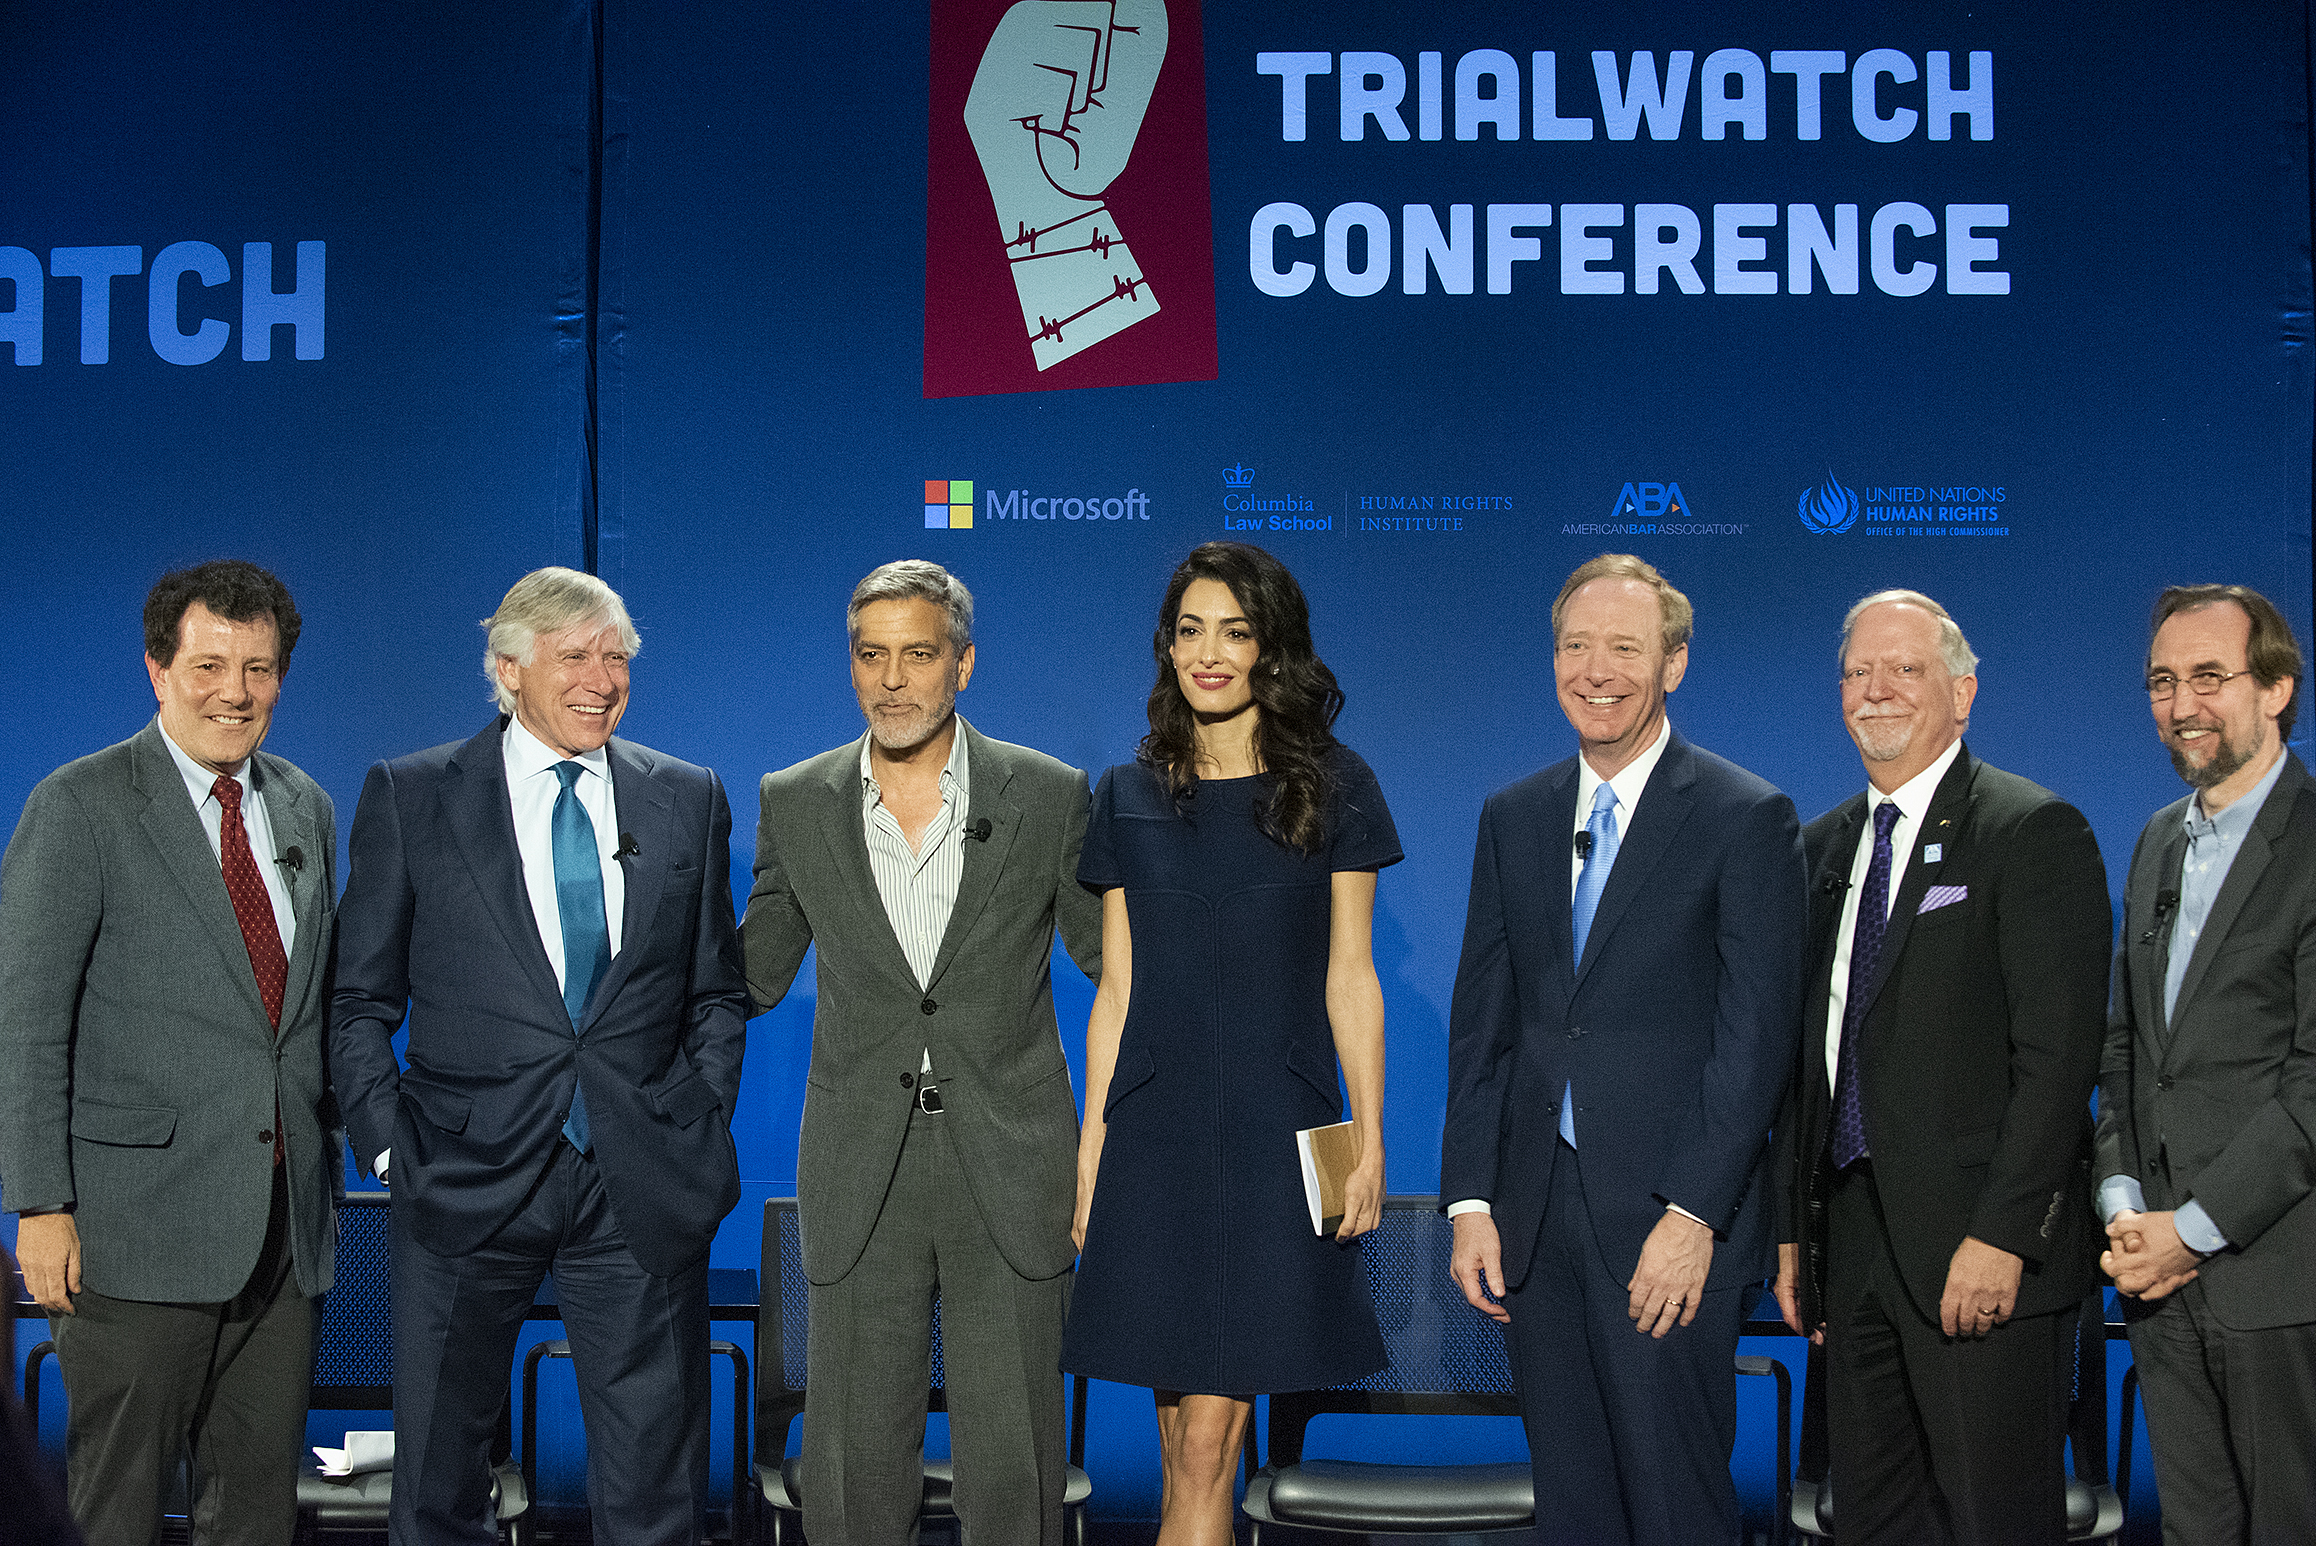 """From left: """"New York Times"""" op-ed columnist Nicholas Kristof, Columbia University President Lee C. Bollinger '71, Clooney Foundation for Justice Co-Presidents George and Amal Clooney, Microsoft President Brad Smith '84, American Bar Association President Bob Carlson, and former United Nations High Commissioner for Human Rights Zeid Ra'ad al-Hussein. Photo: Beatrice Moritz / Clooney Foundation for Justice"""